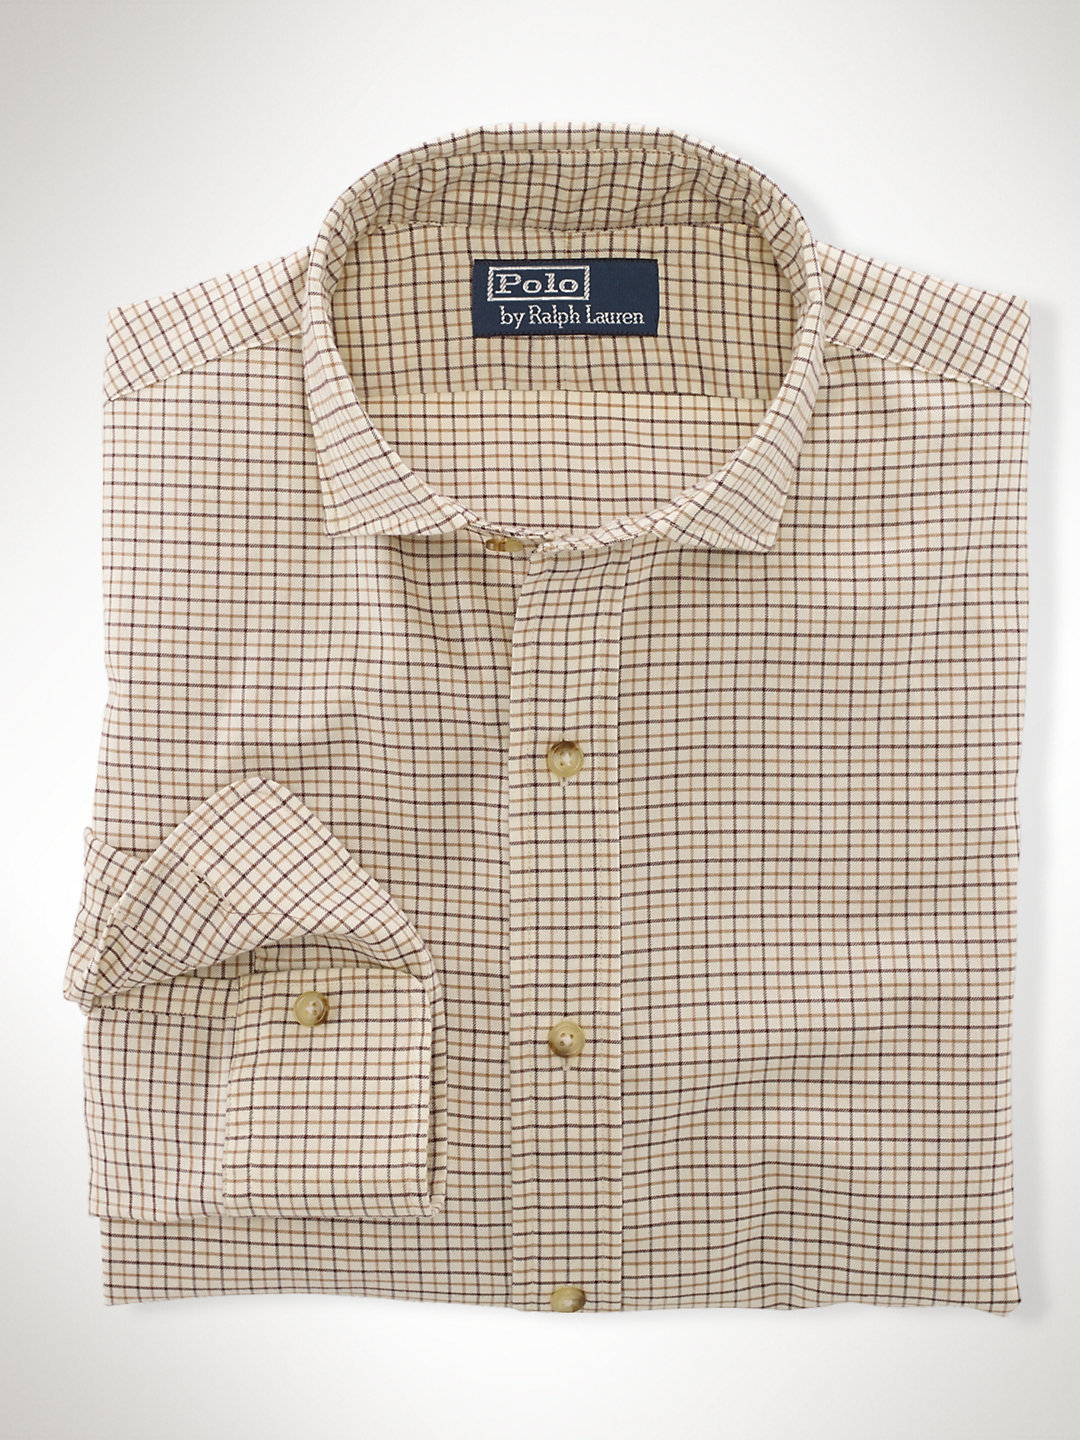 Six Great Types of Shirts for Fall